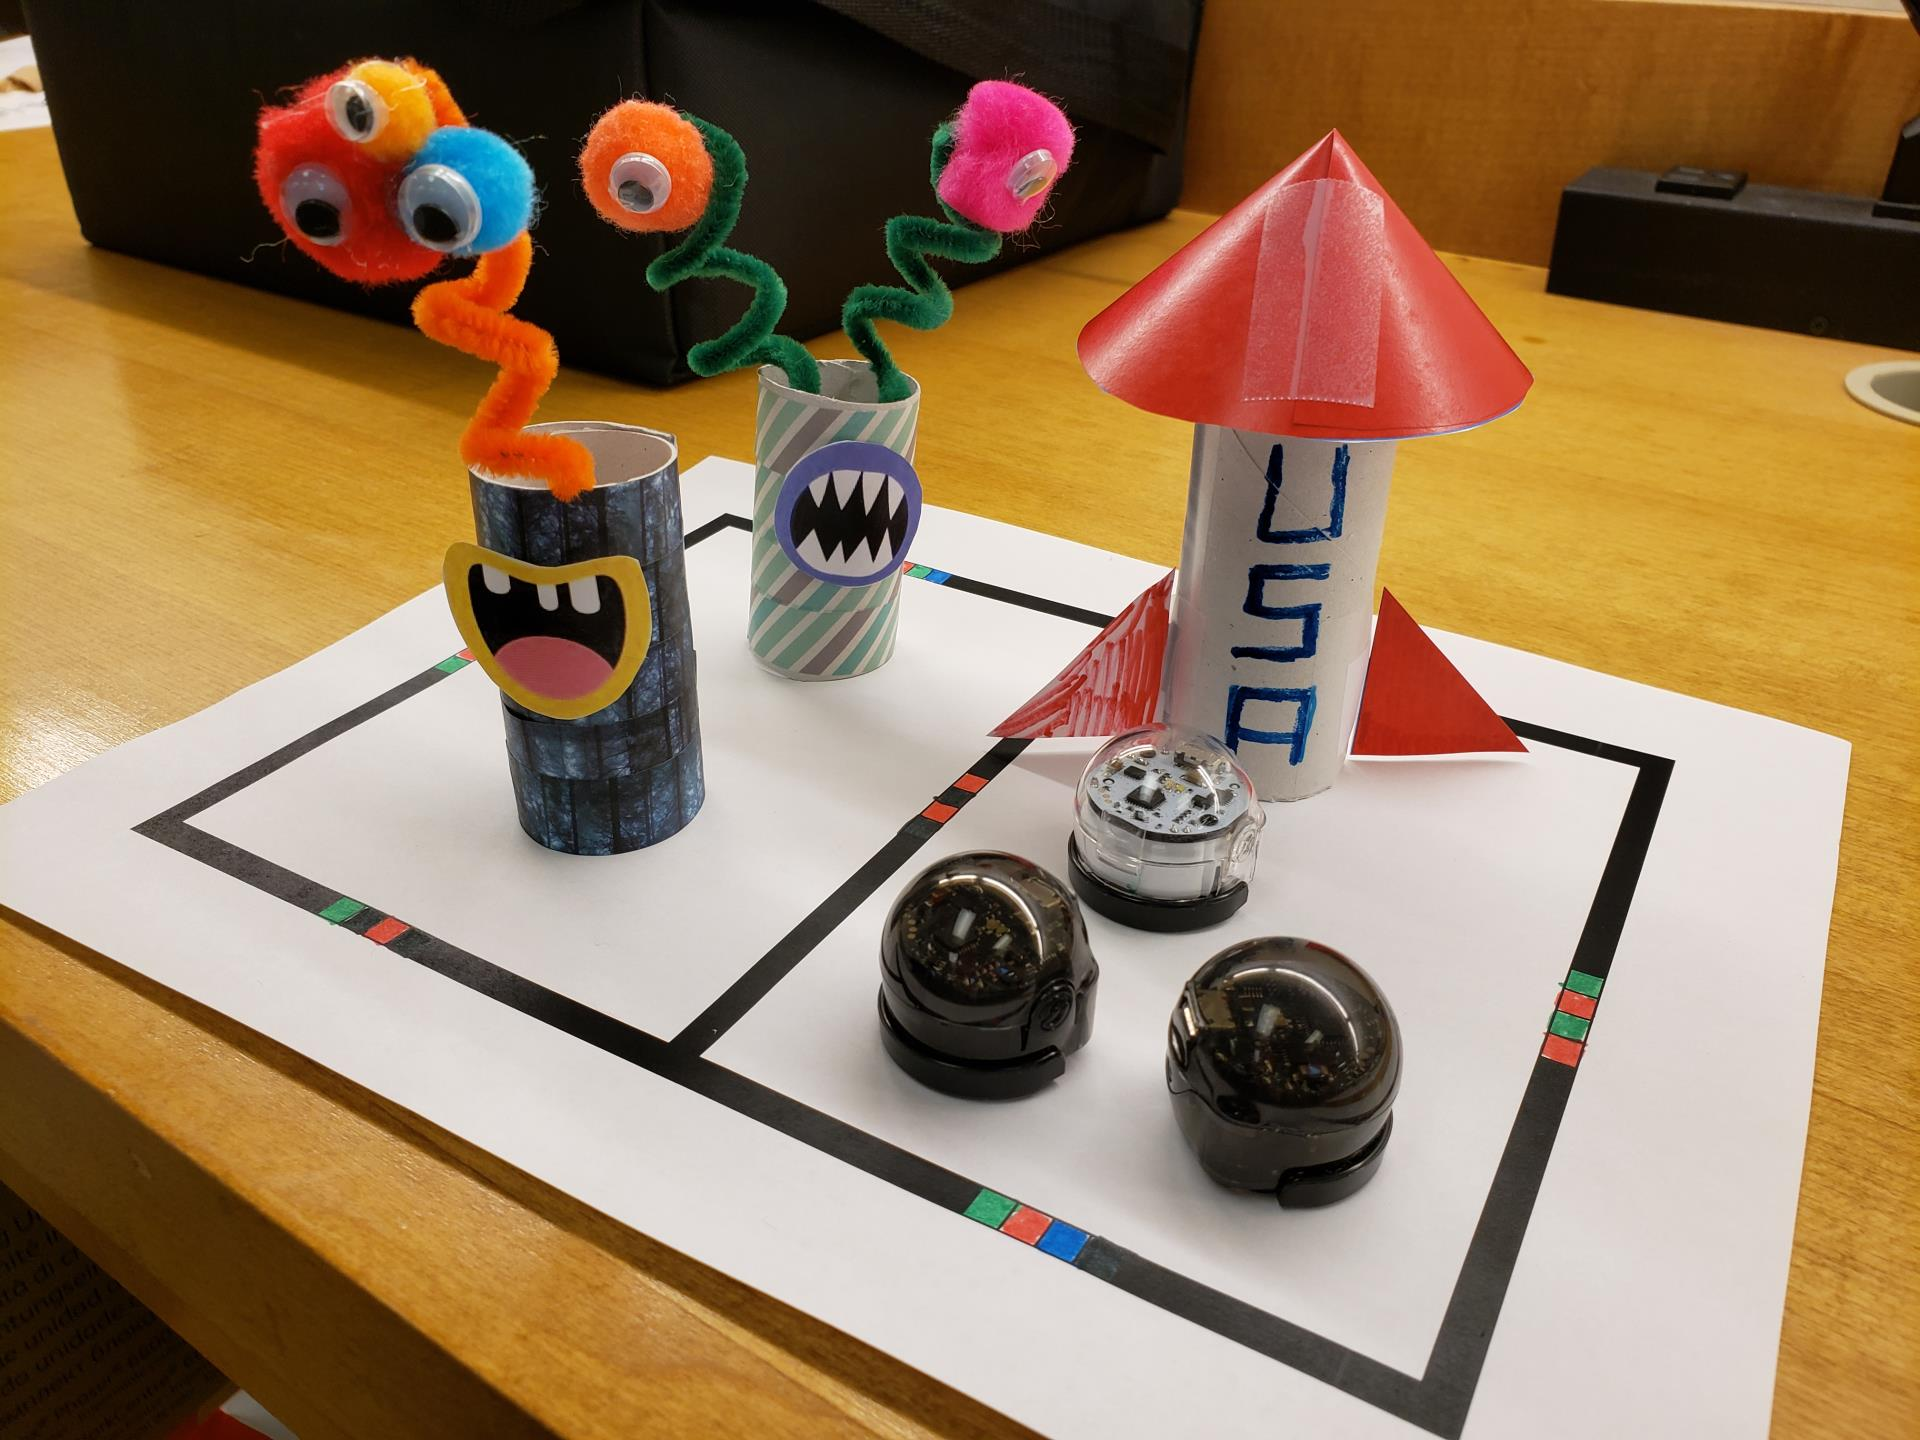 Ozobot robots with space costumes in the shape of rockets and aliens